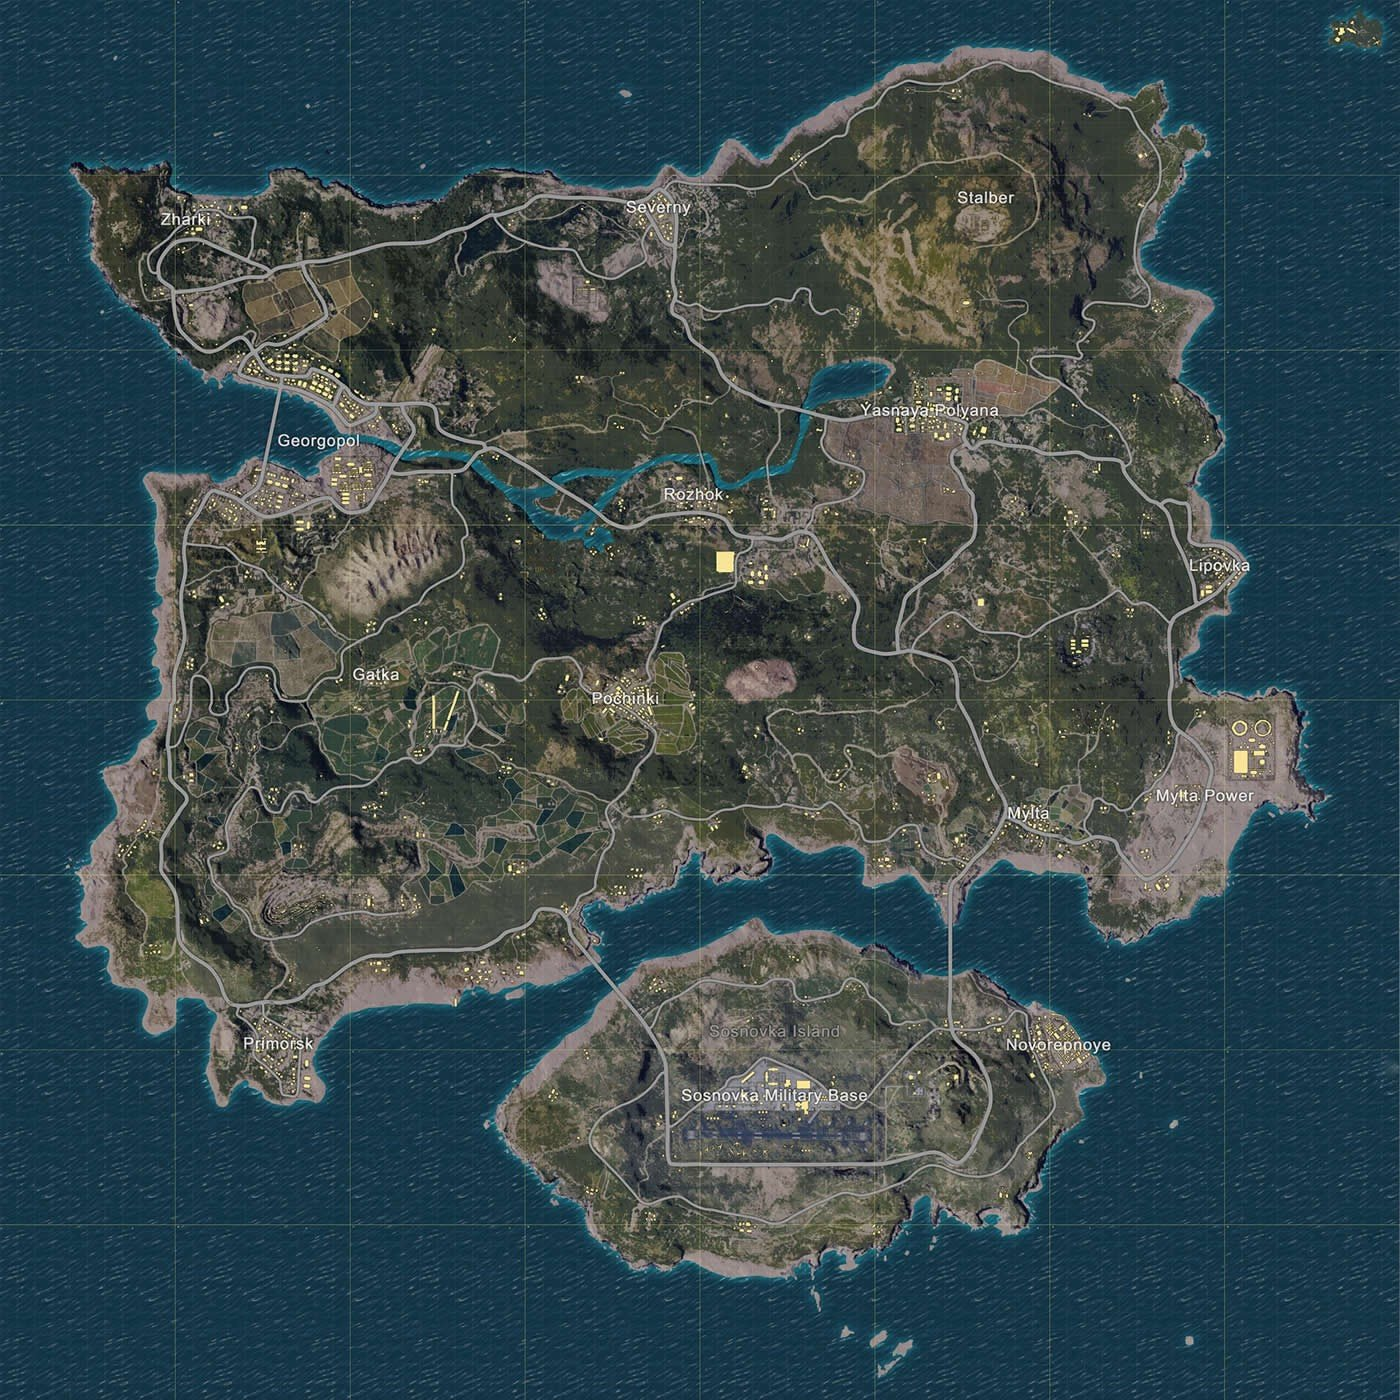 PUBG: The Game People Are Going Ga-Ga Over